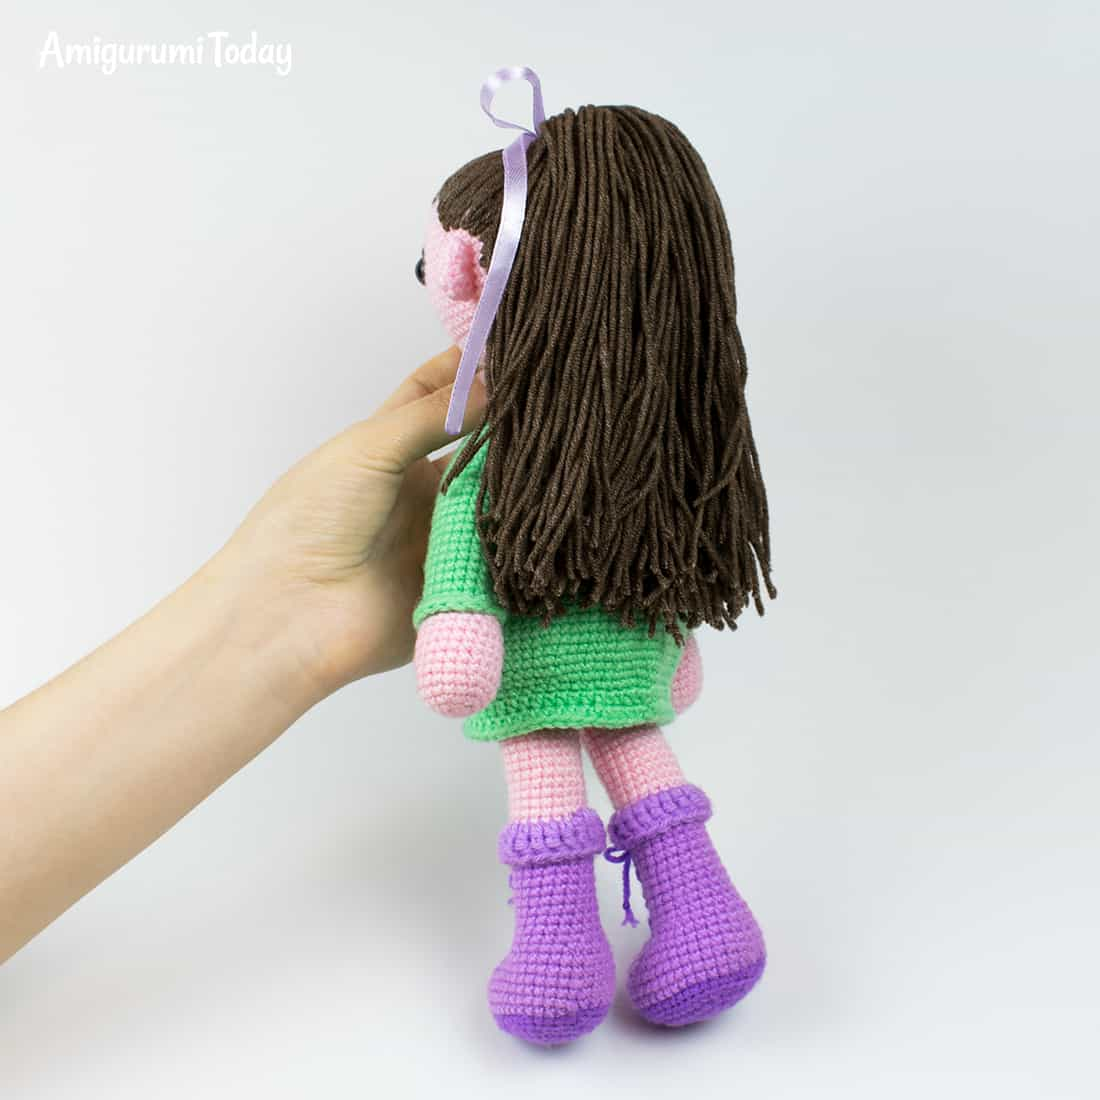 Lulu Doll - Free amigurumi pattern by Amigurumi Today